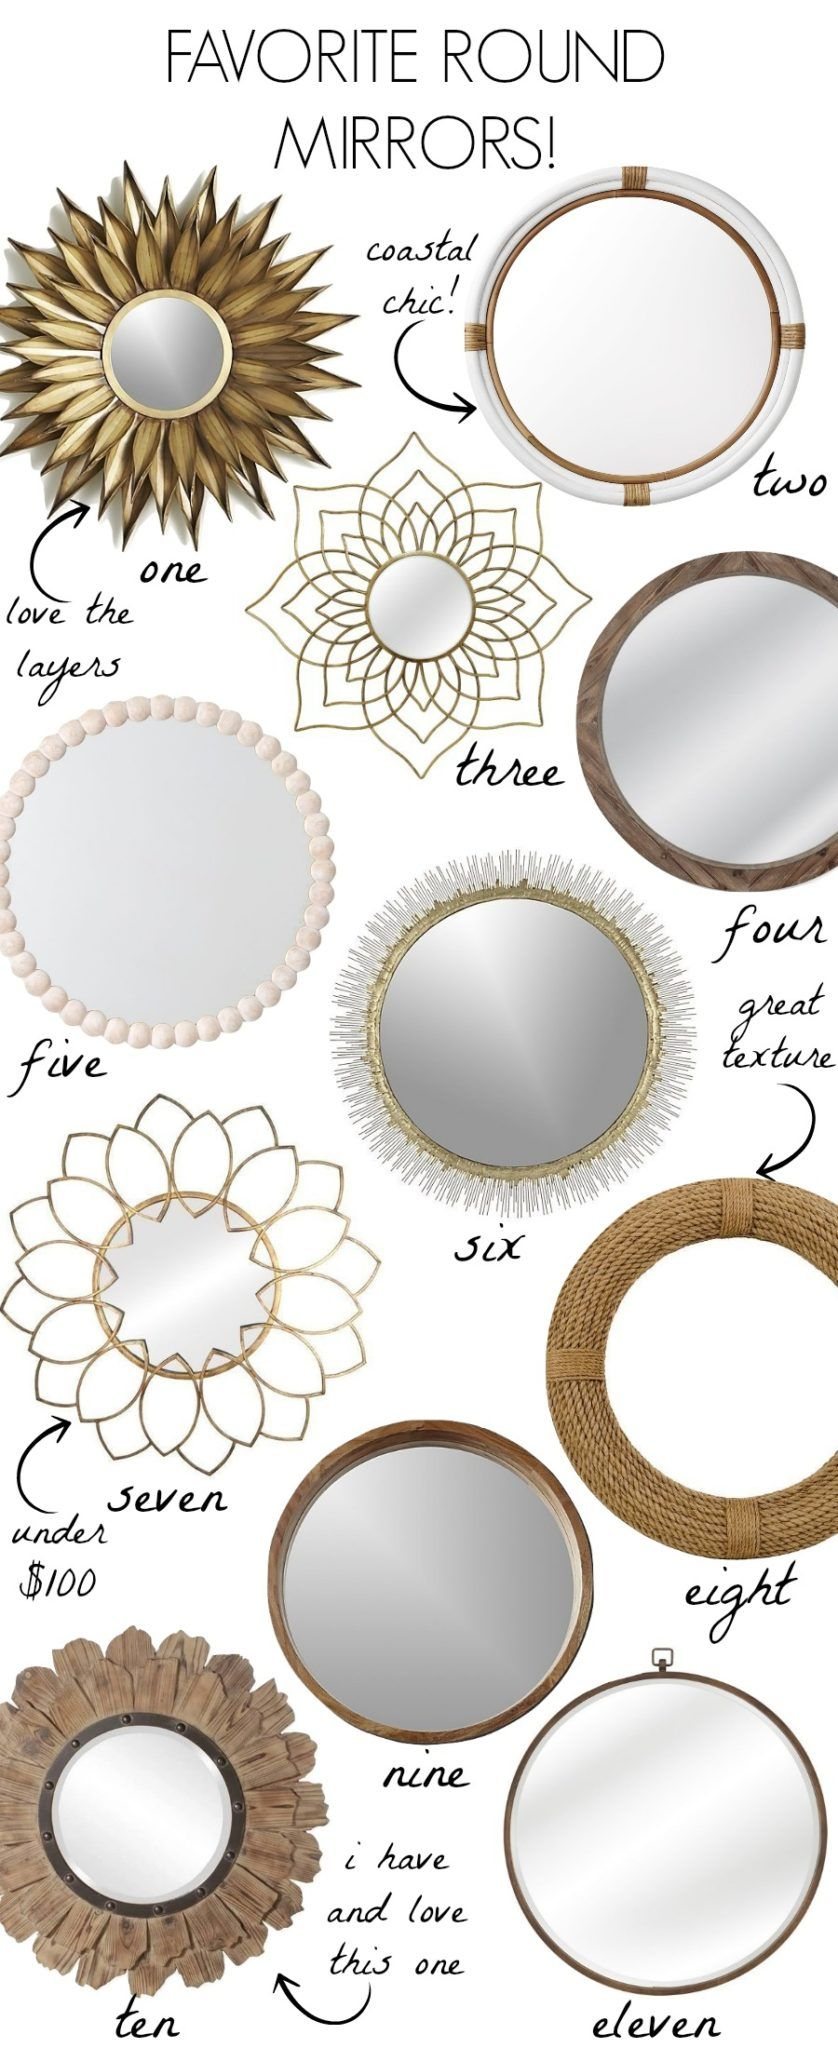 Loving These Gorgeous Round Mirrors Large Round Mirrors Wood Mirrors Gold Mirrors So Many Beautiful Mirror Frame Diy Round Mirror Decor Round Gold Mirror